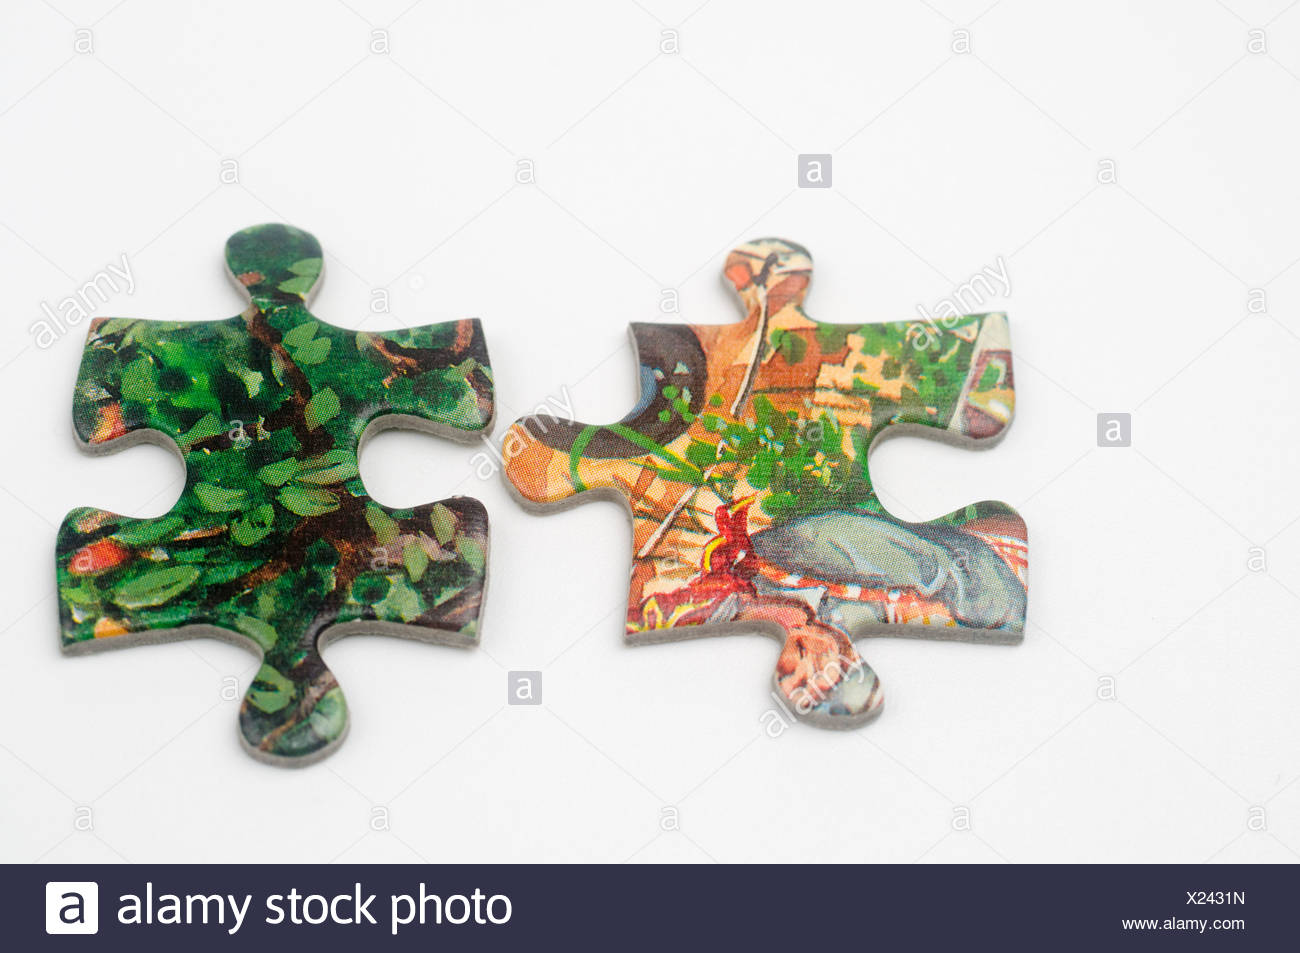 Cutout of non matching Jigsaw Puzzle pieces on white background - Stock Image